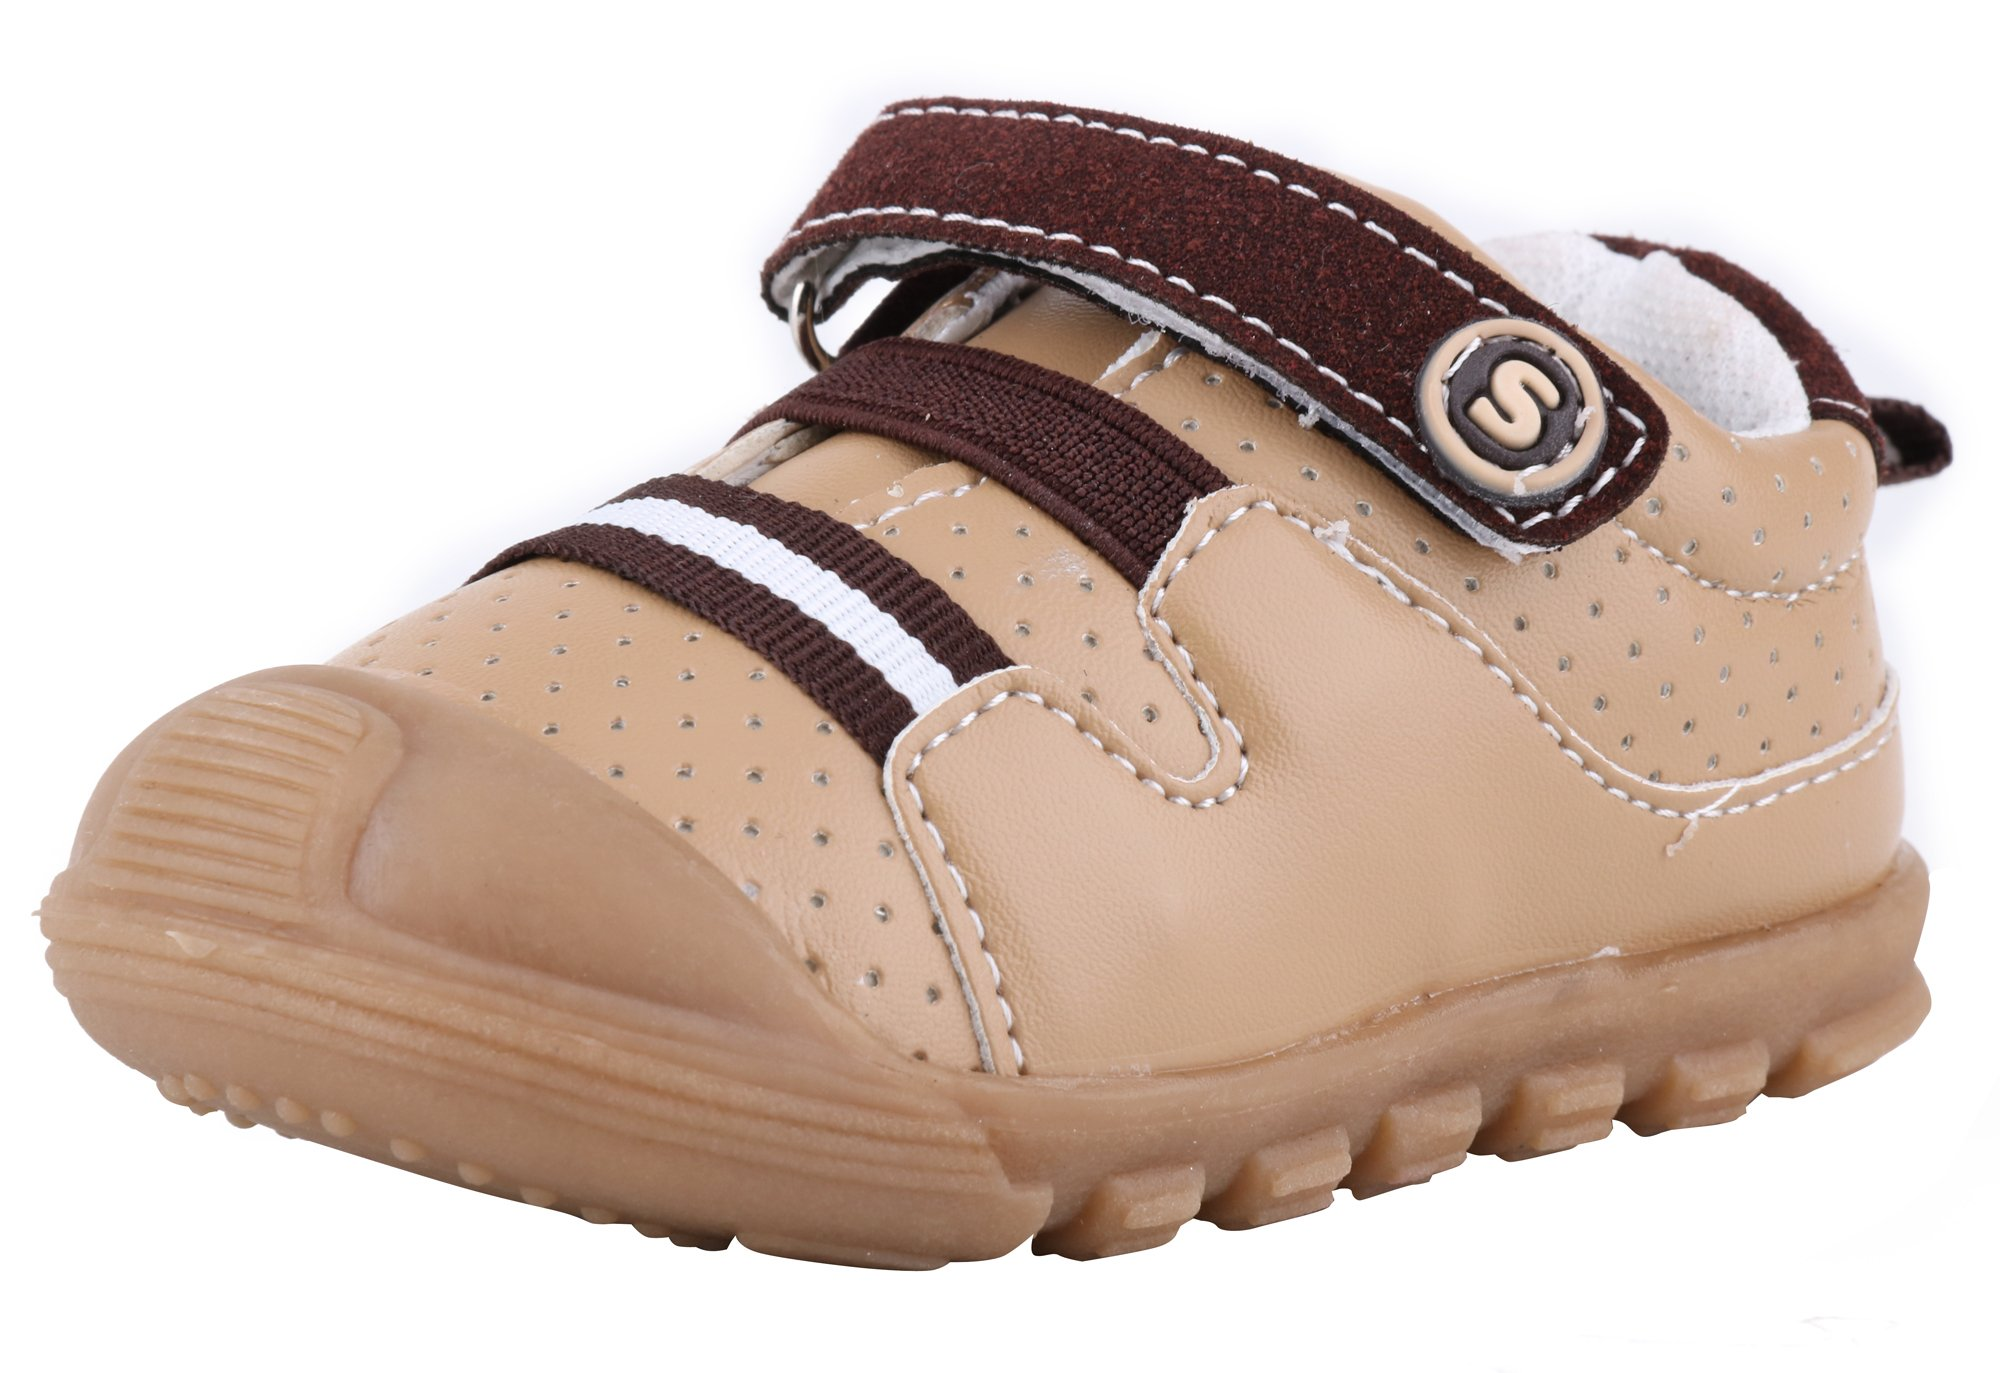 LONSOEN Baby Boys and Girls Anti-Slip Walking Shoes Toddler Athletic Sneaker BAY001 Brown CN18